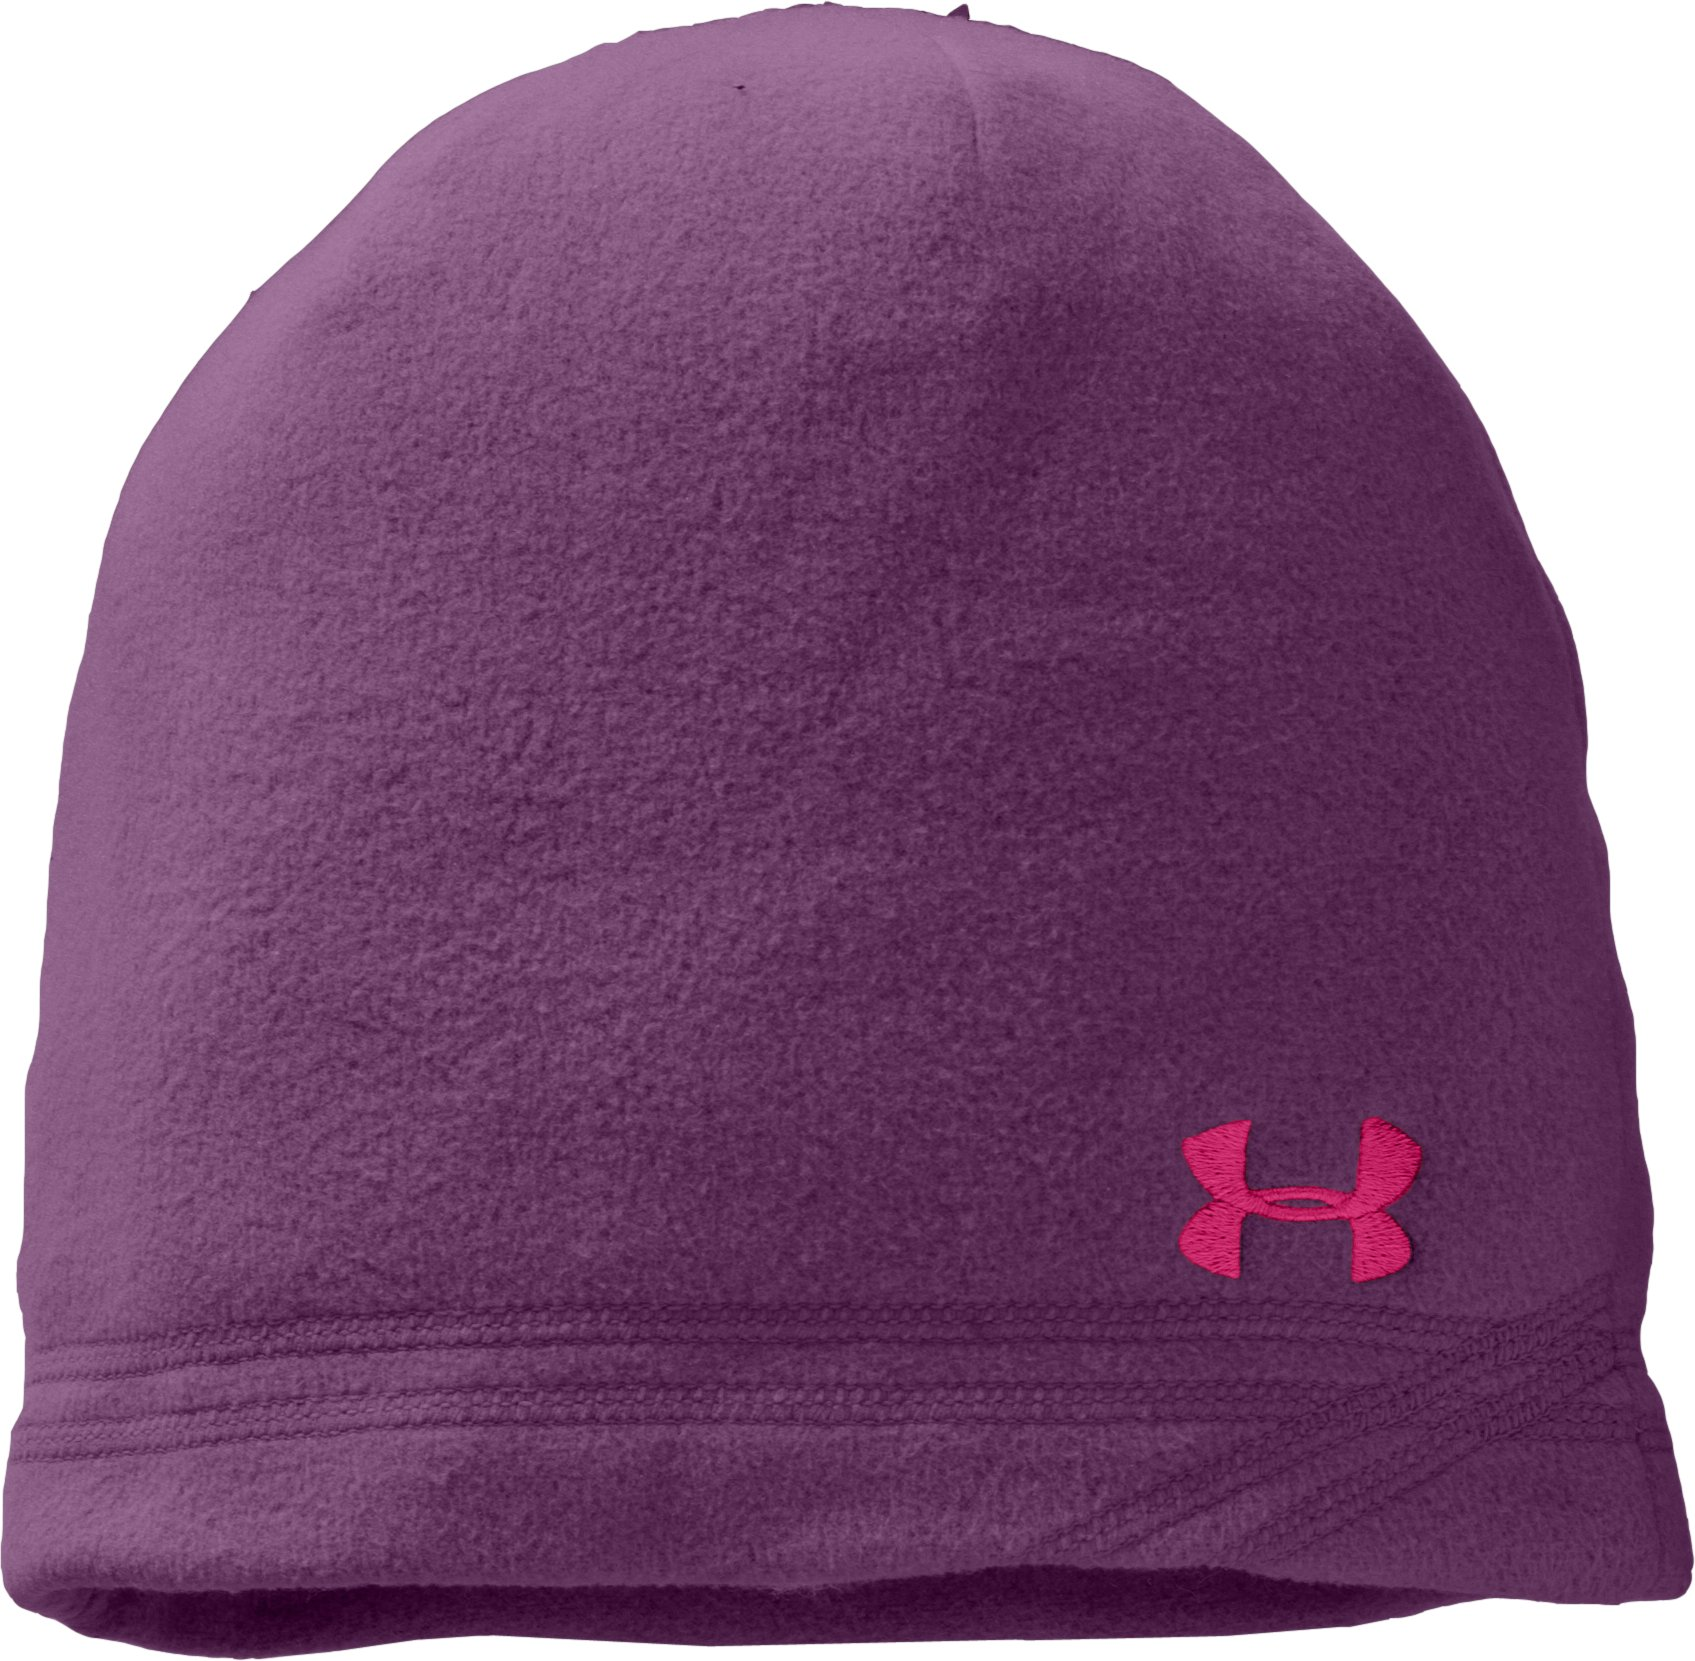 Women's UA Blustery Beanie, Rivalry